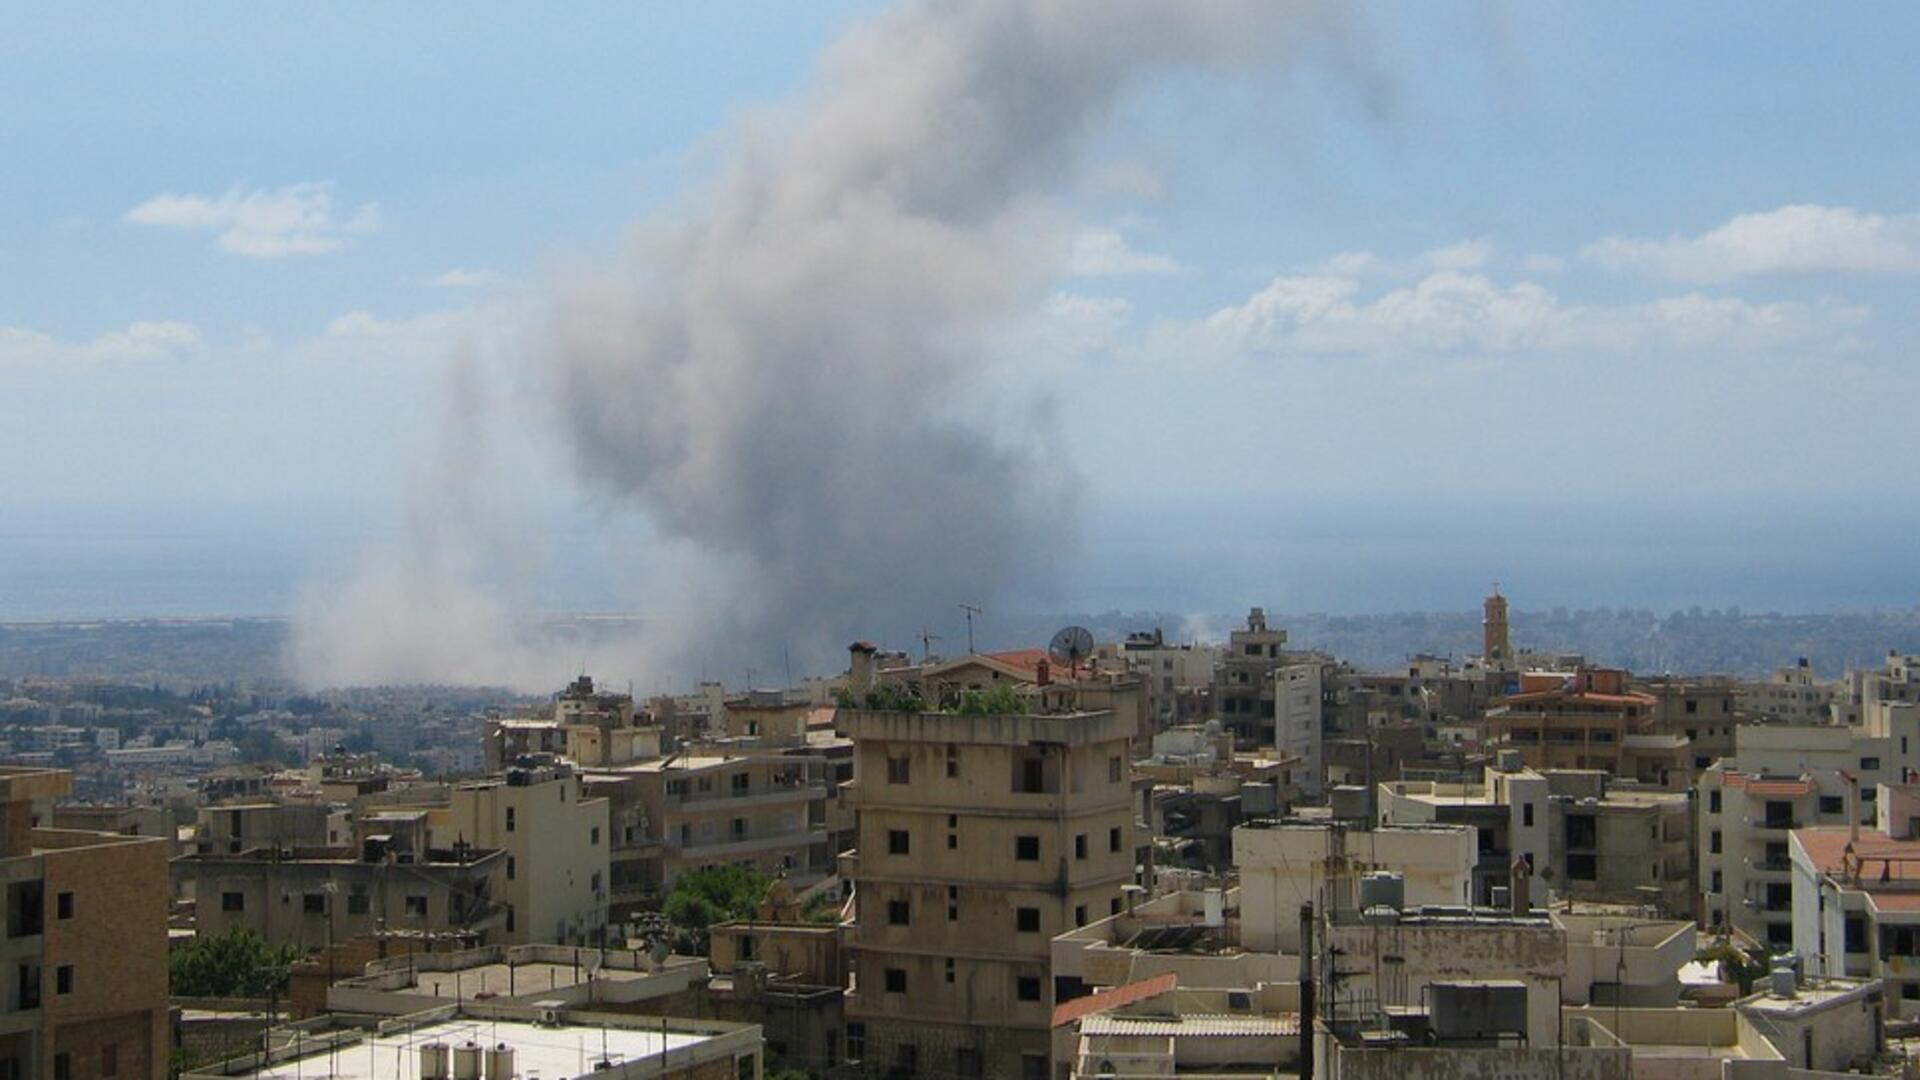 The skyline of Beirut with a huge plume of smoke in the background.